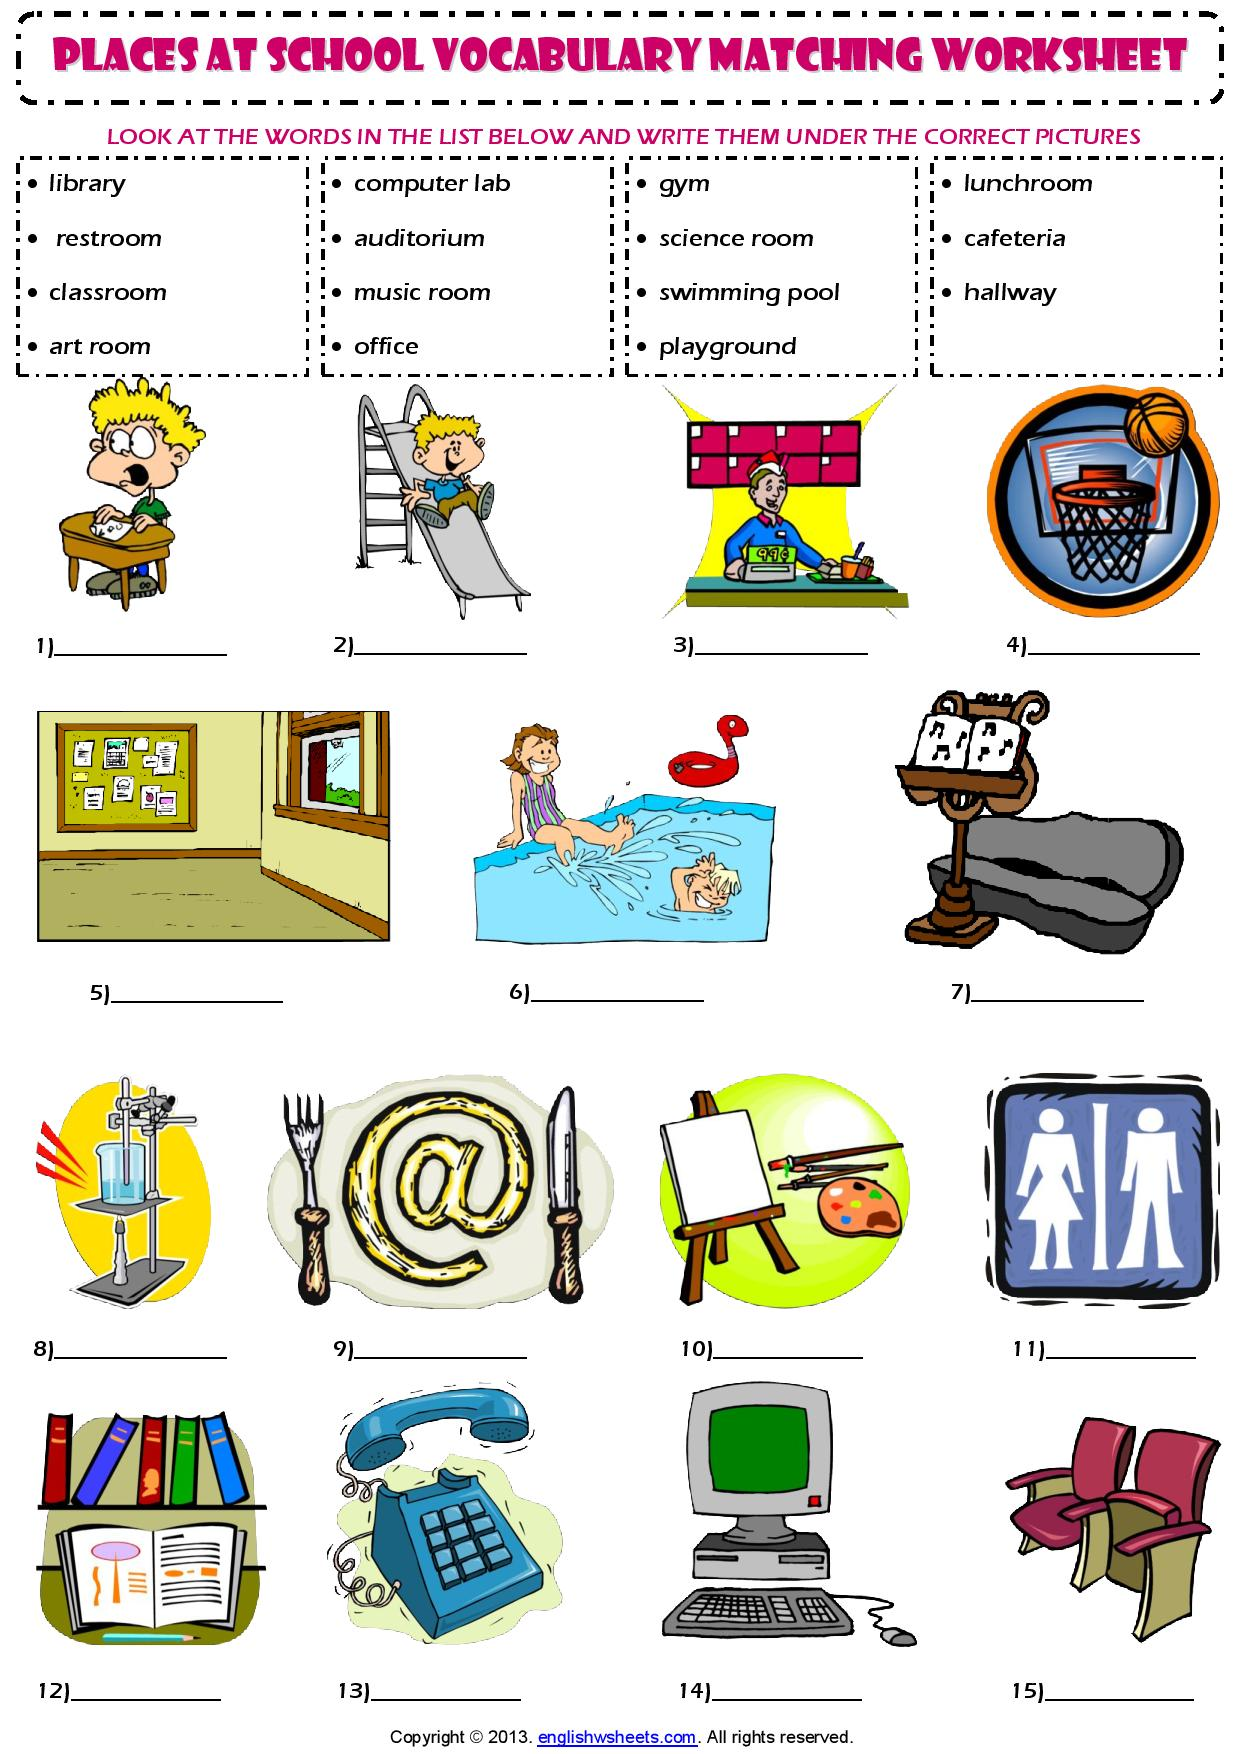 Places At School Vocabulary Matching Exercise Worksheet Page 001